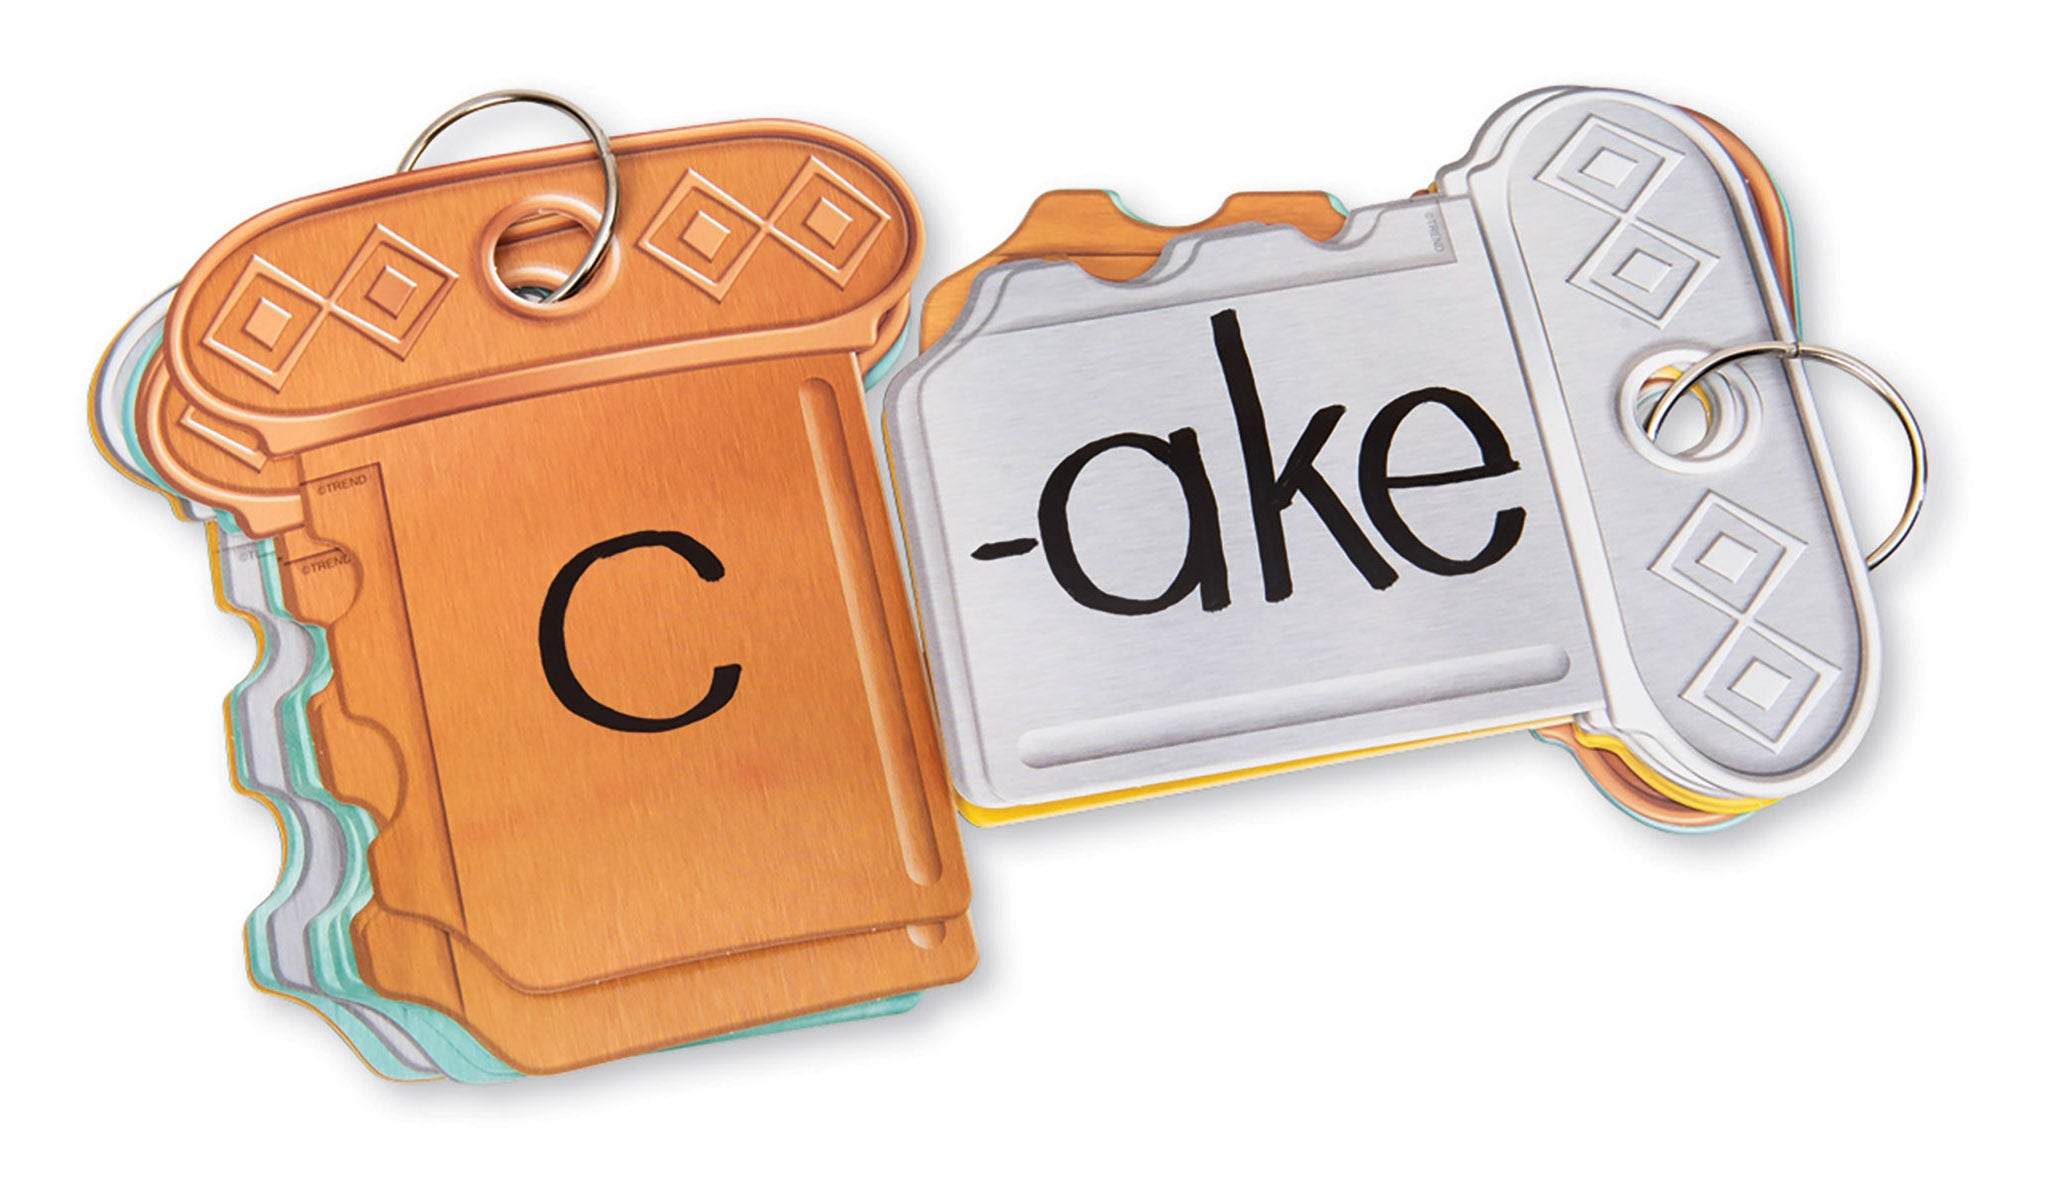 A1095 Key Words Key Ring Learning FUN Activity